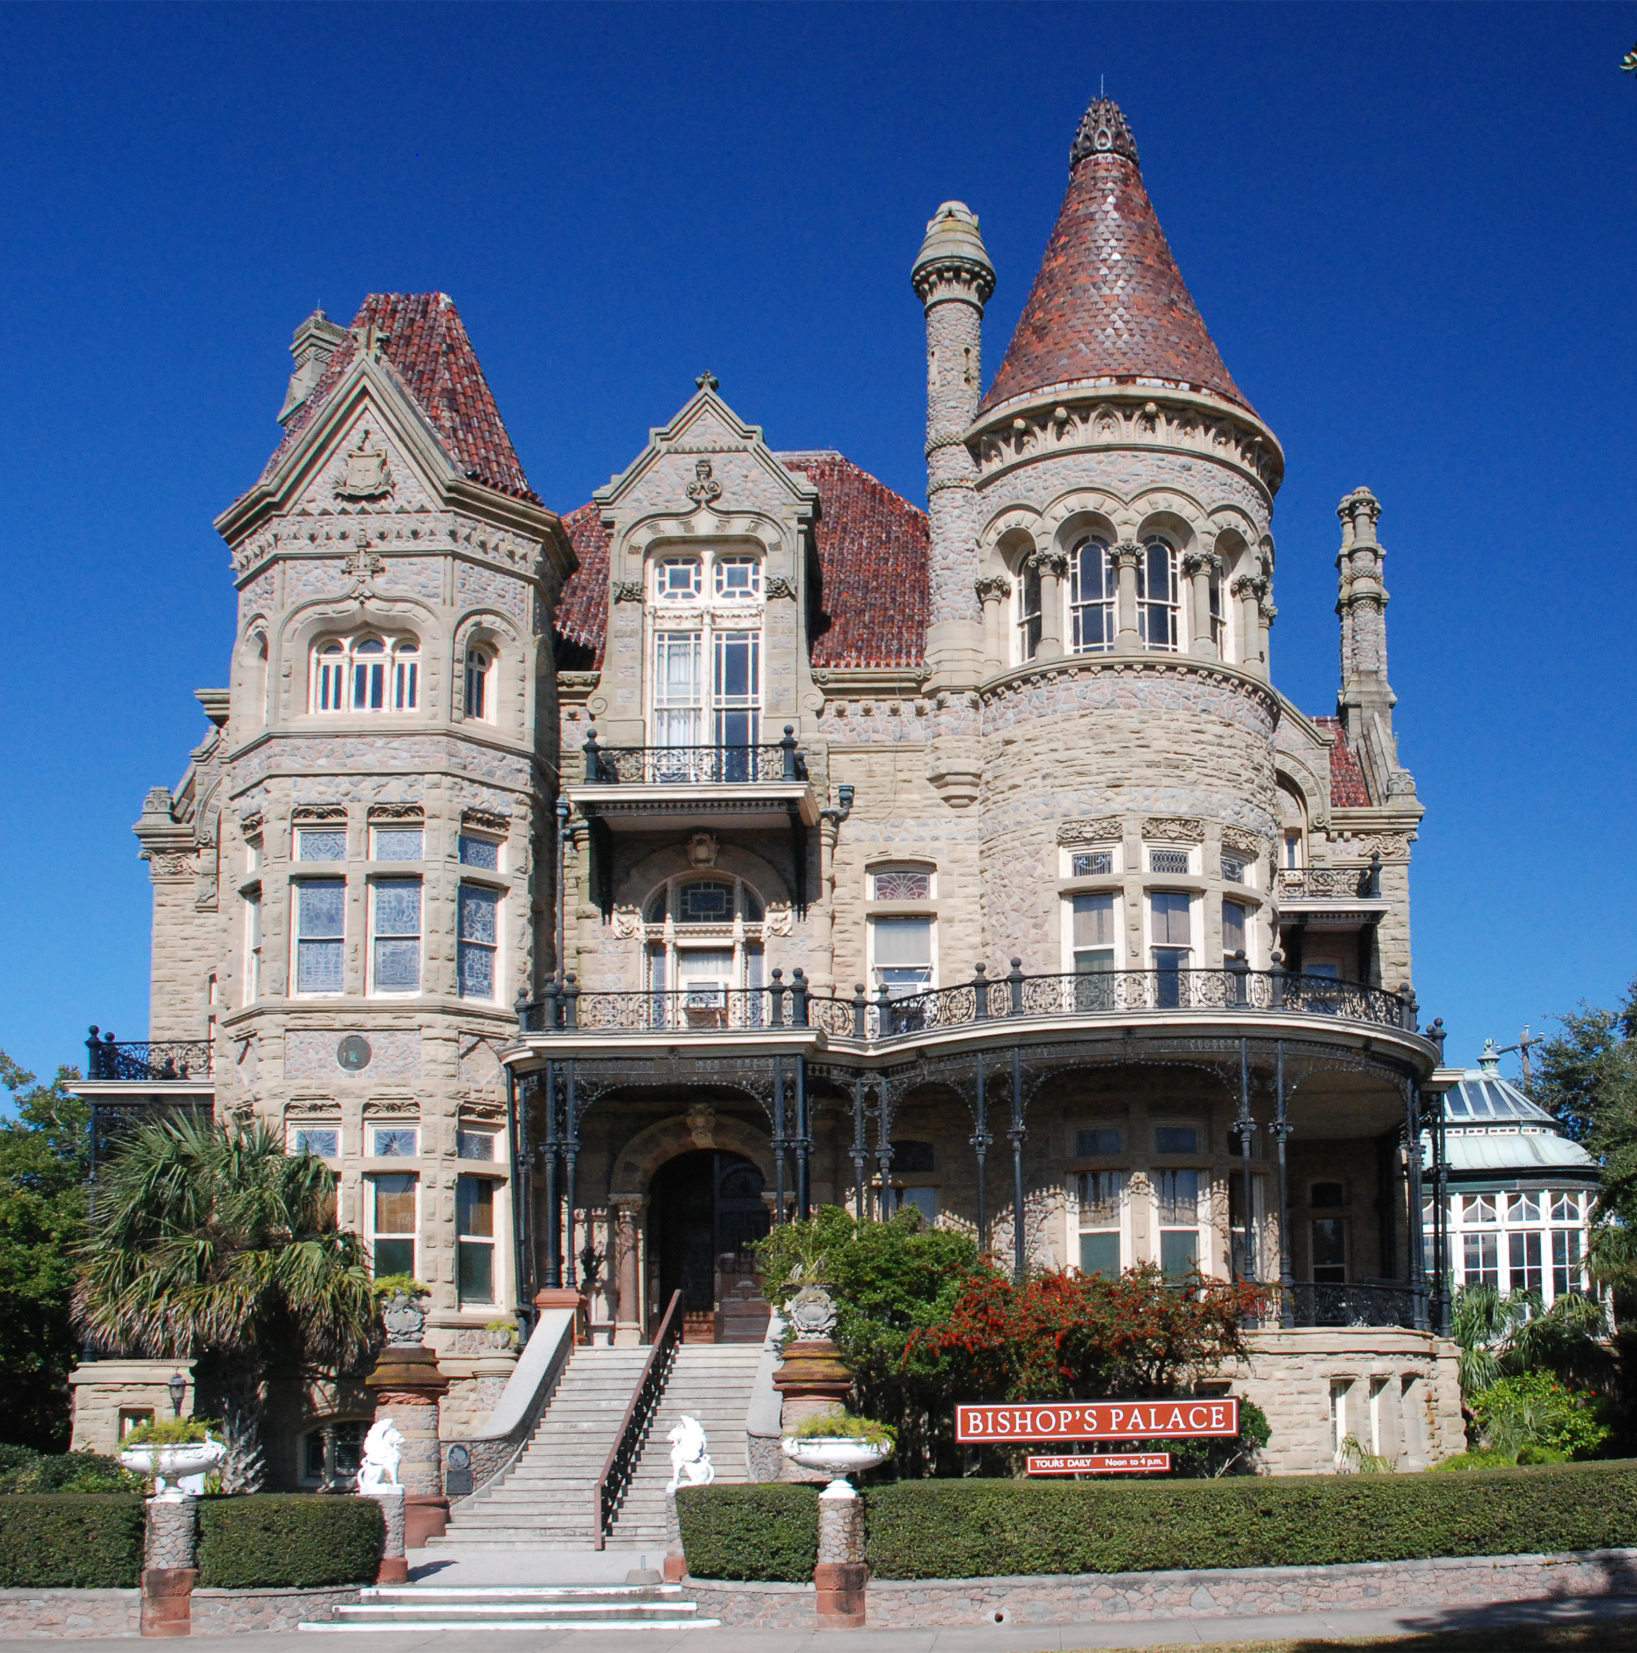 2008 Idea House In Galvestion Texas: 1892 Bishop's Palace